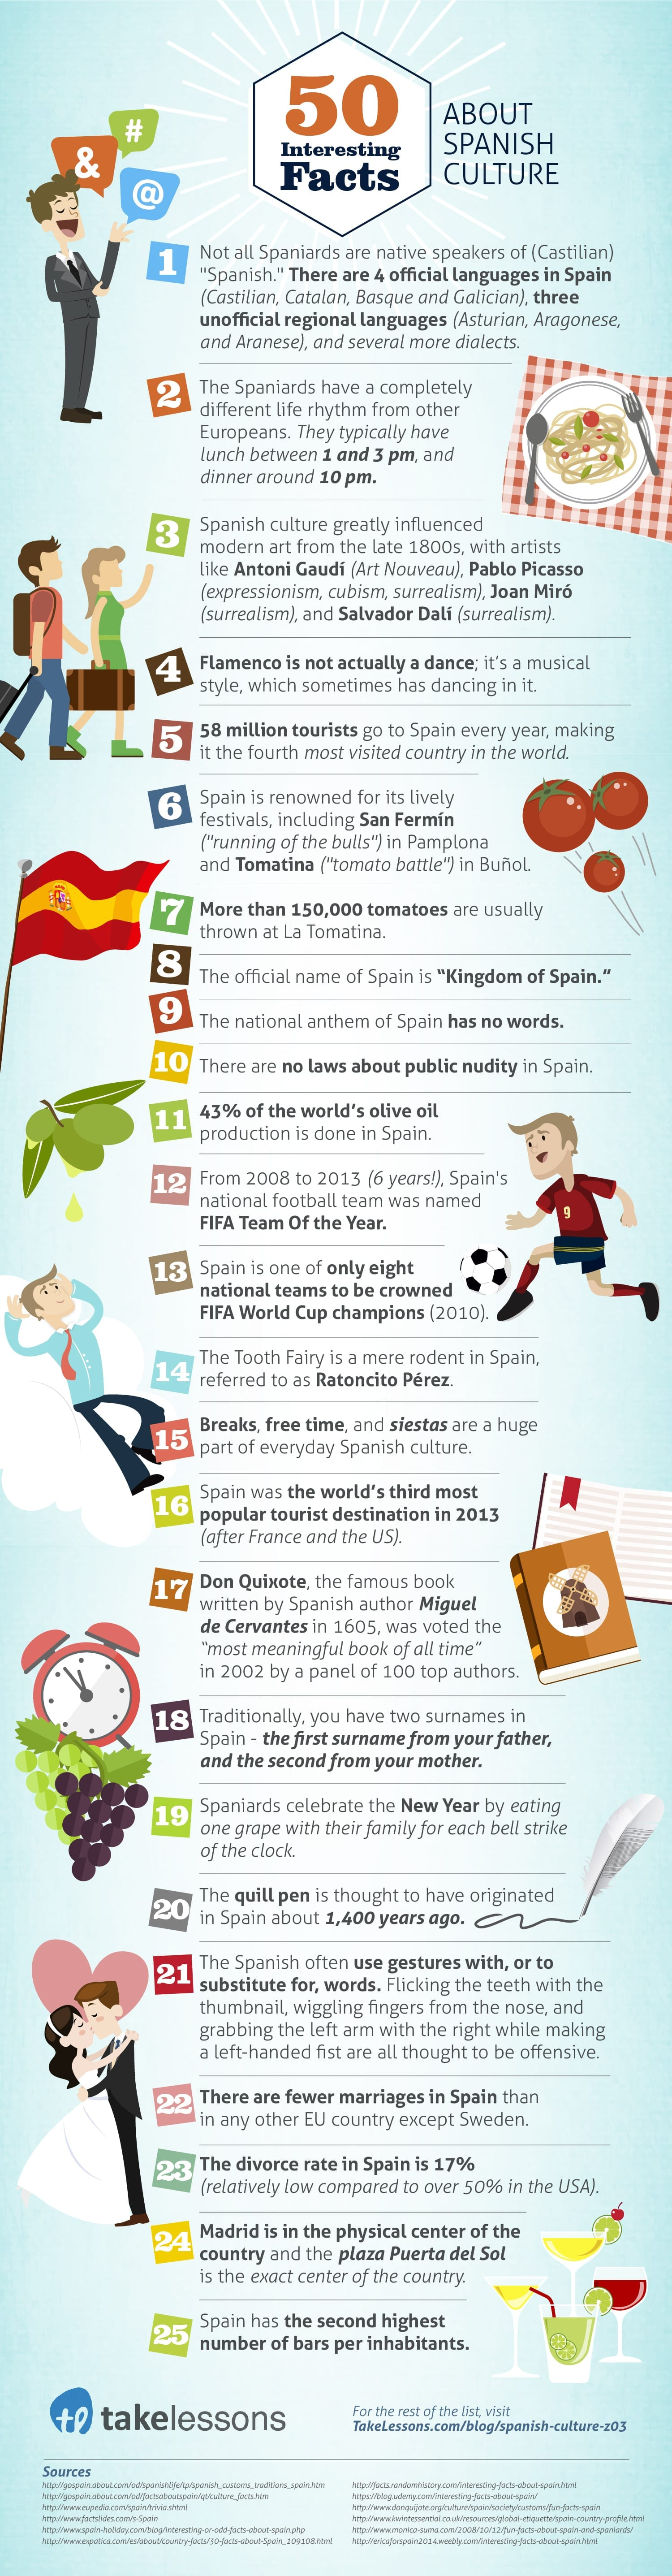 50 Most Interesting Facts About Spain Infographic